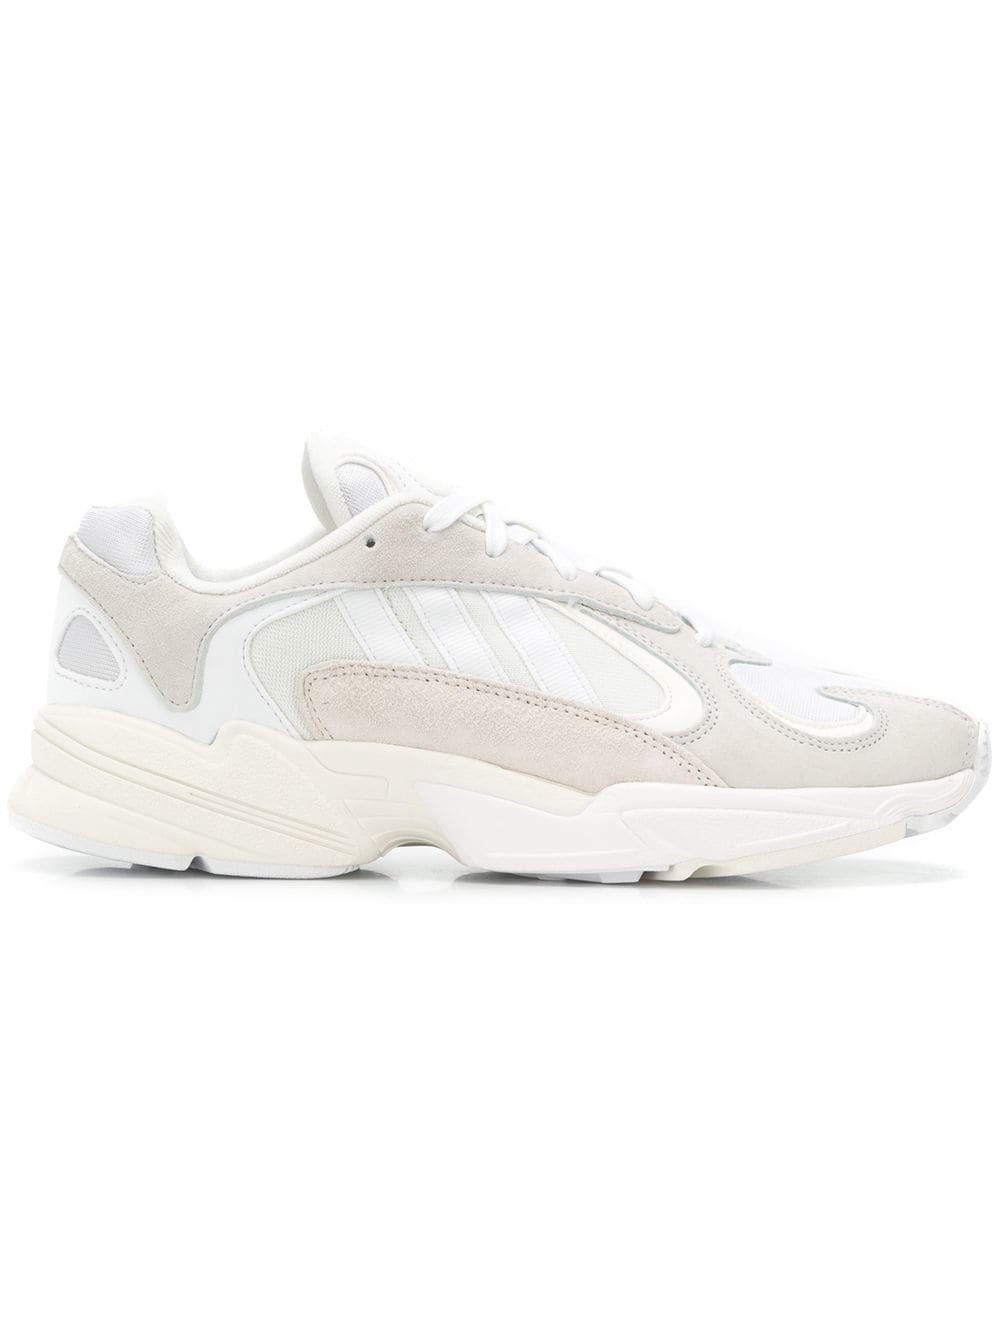 official photos 14d95 56a2b Adidas Yung-1 Blancas B37616